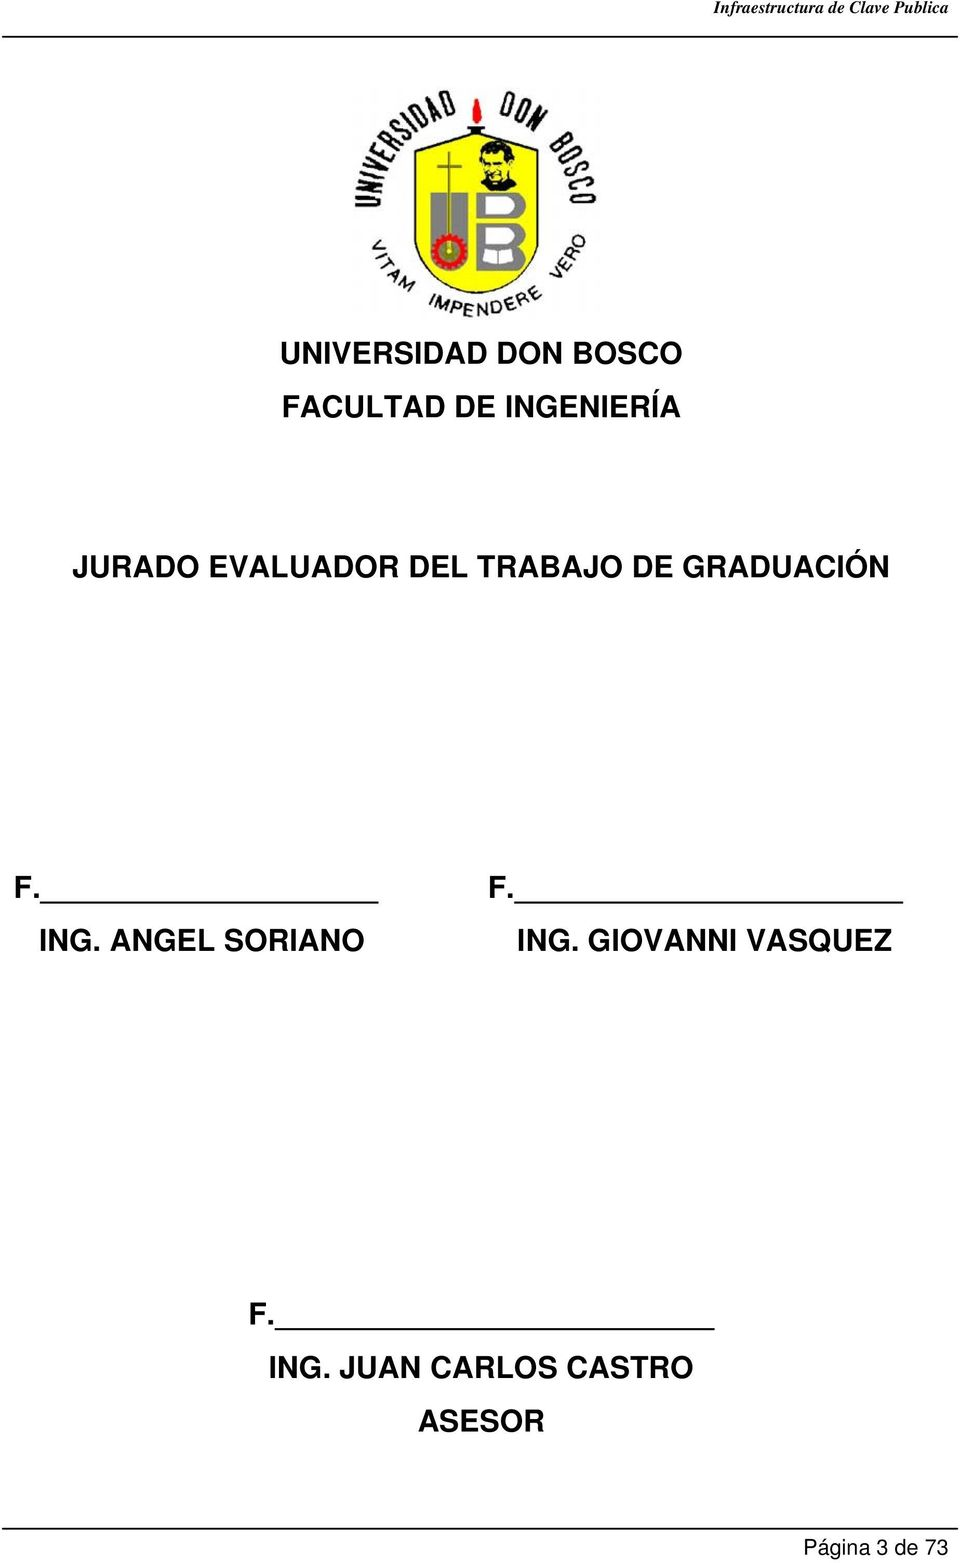 ING. ANGEL SORIANO F. ING. GIOVANNI VASQUEZ F.